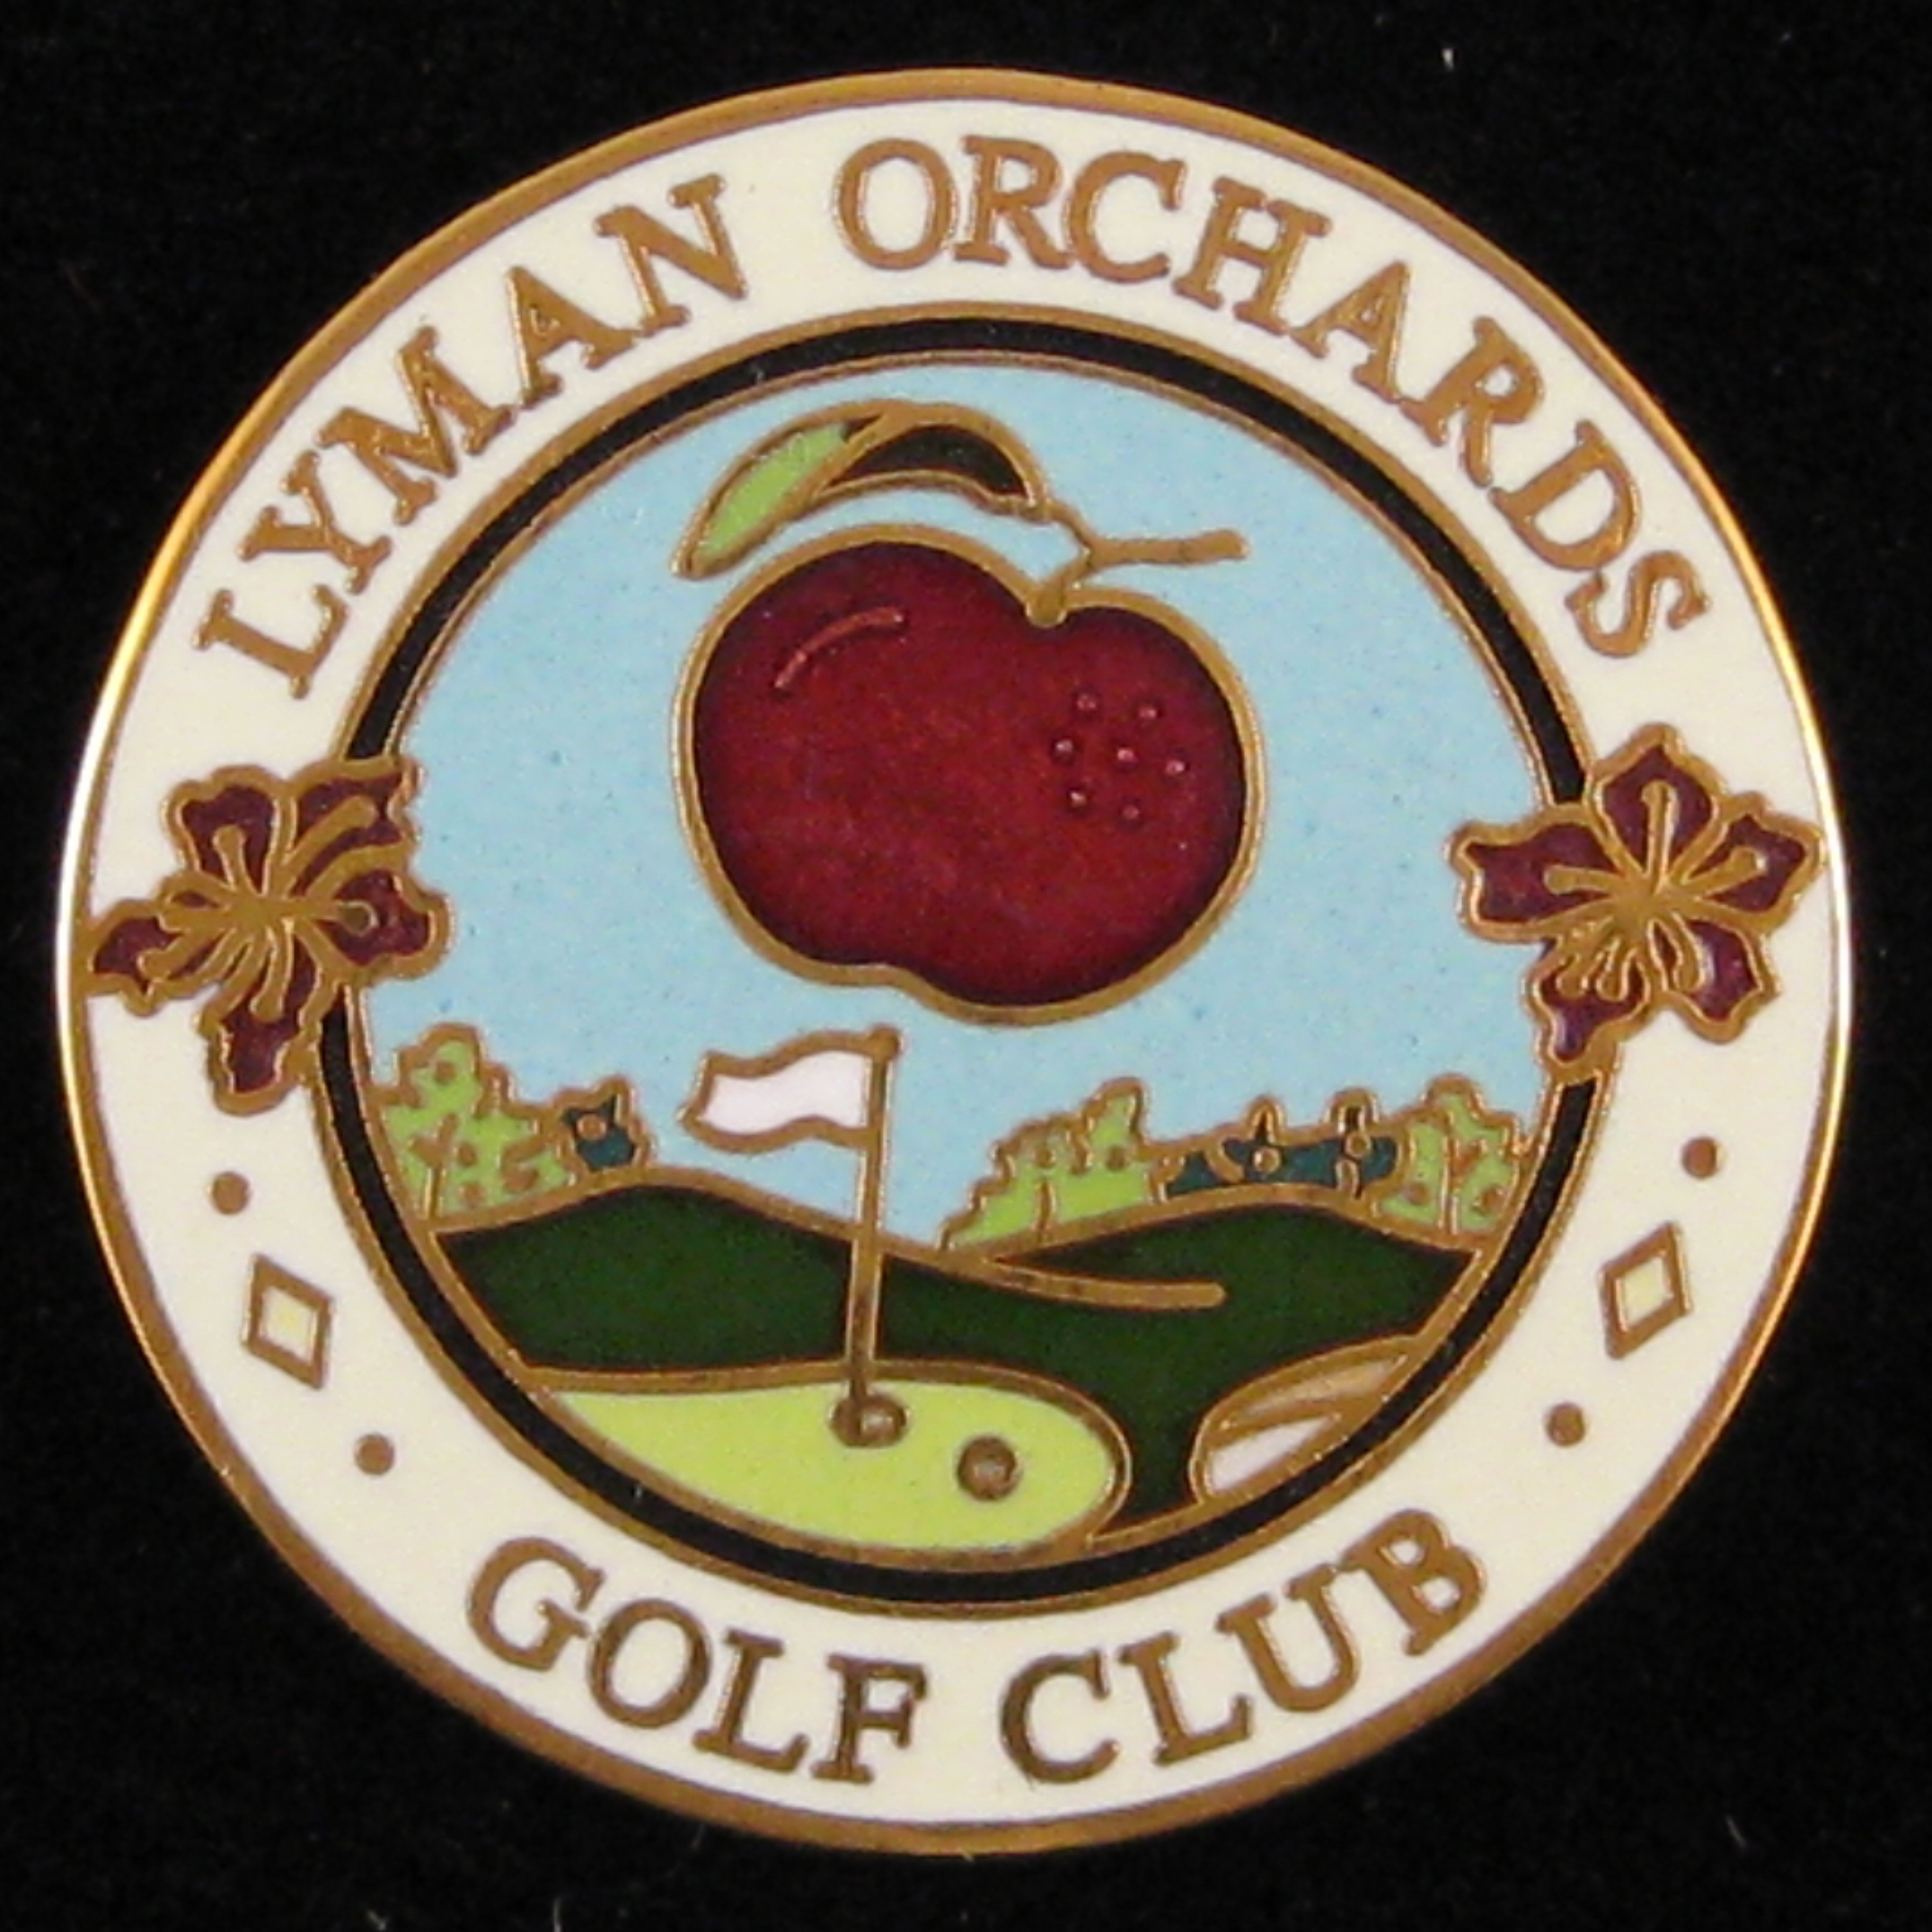 Lyman Orchards - Front